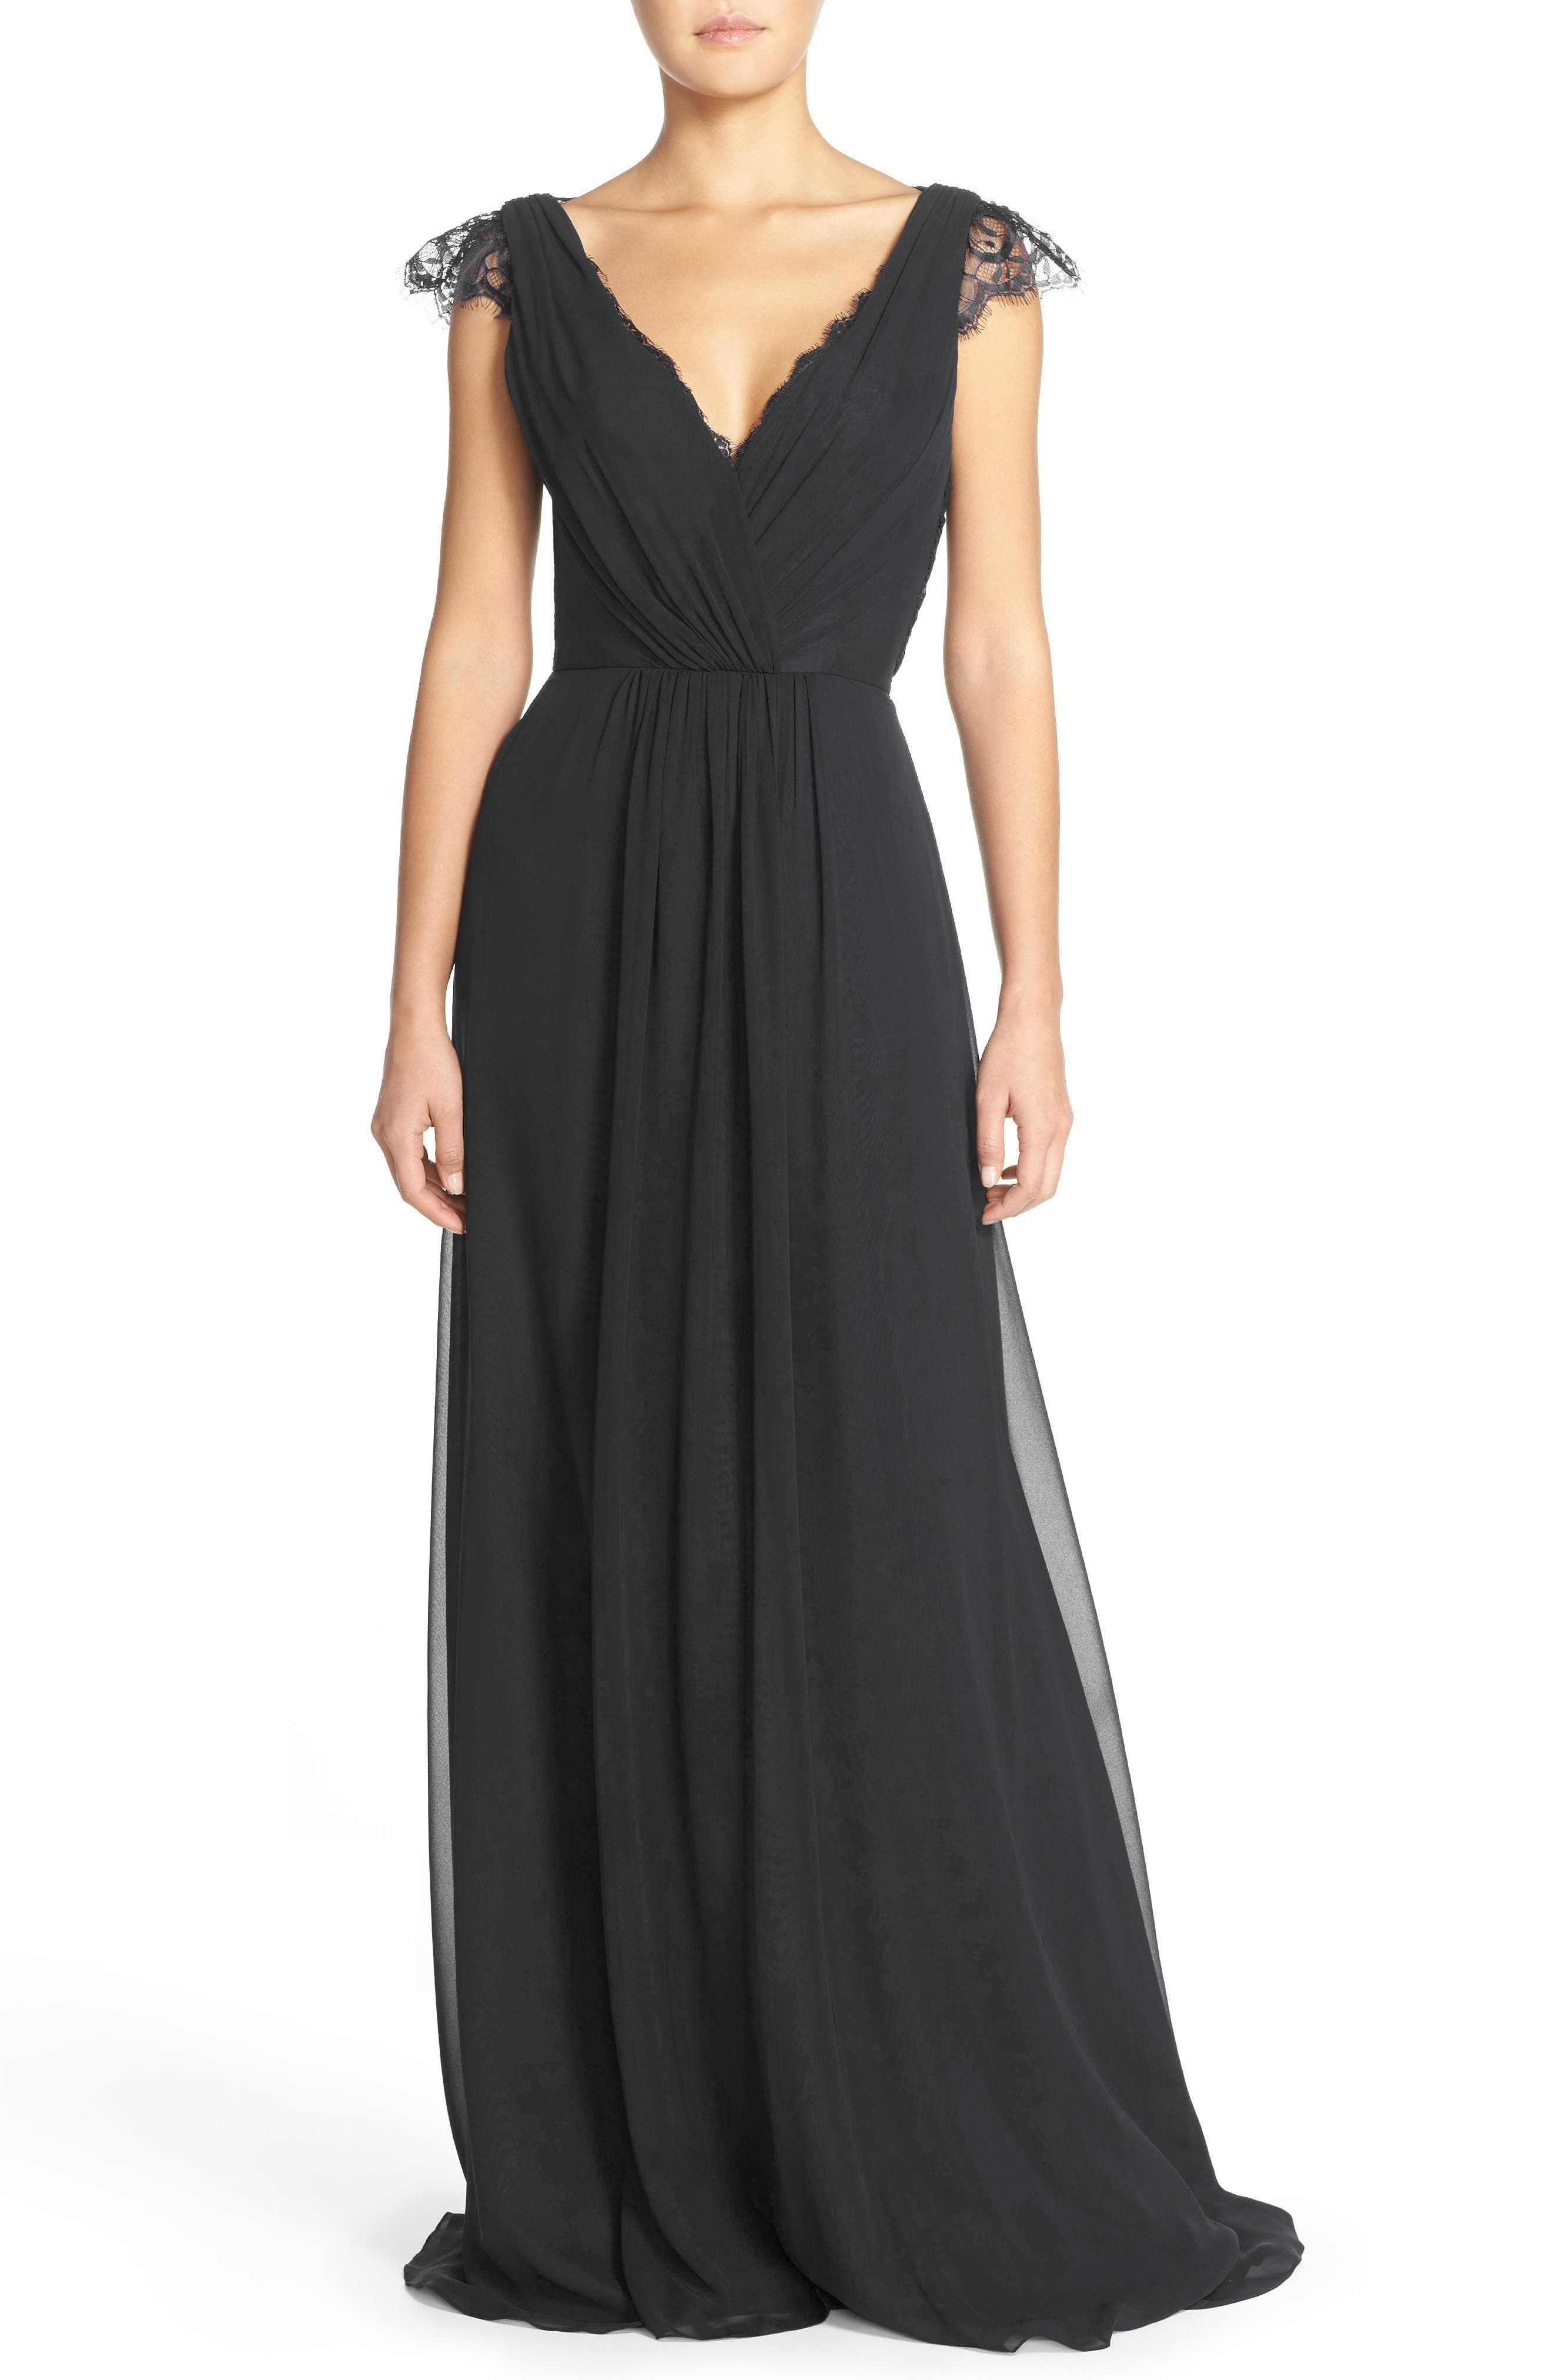 Main Image - Hayley Paige Occasions Lace & Chiffon Cap Sleeve Gown